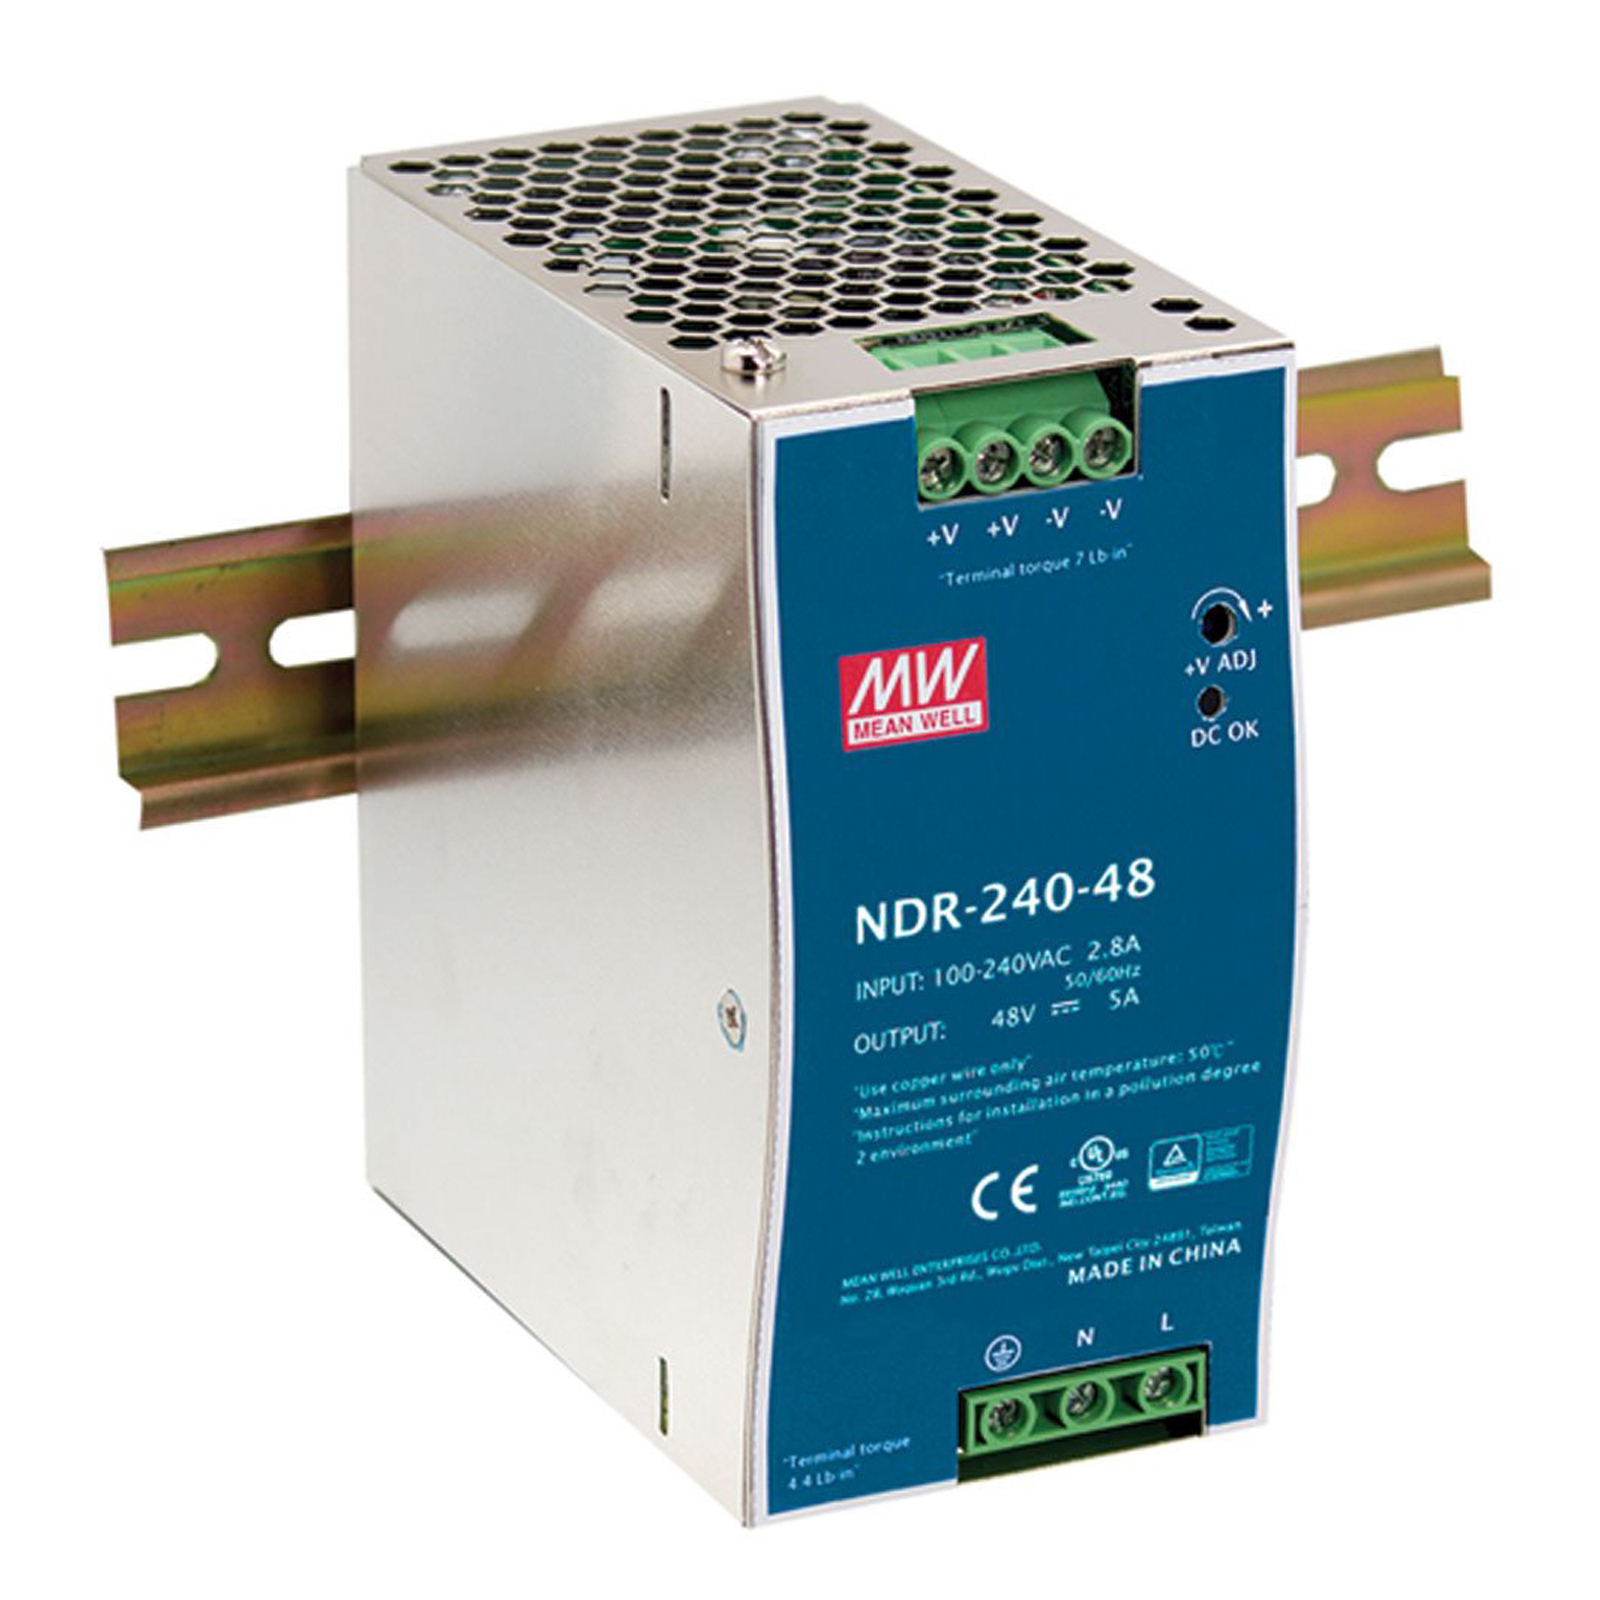 MEAN WELL 240W/48V 5A Industrial DIN RAIL Power Supply NDR-240-48